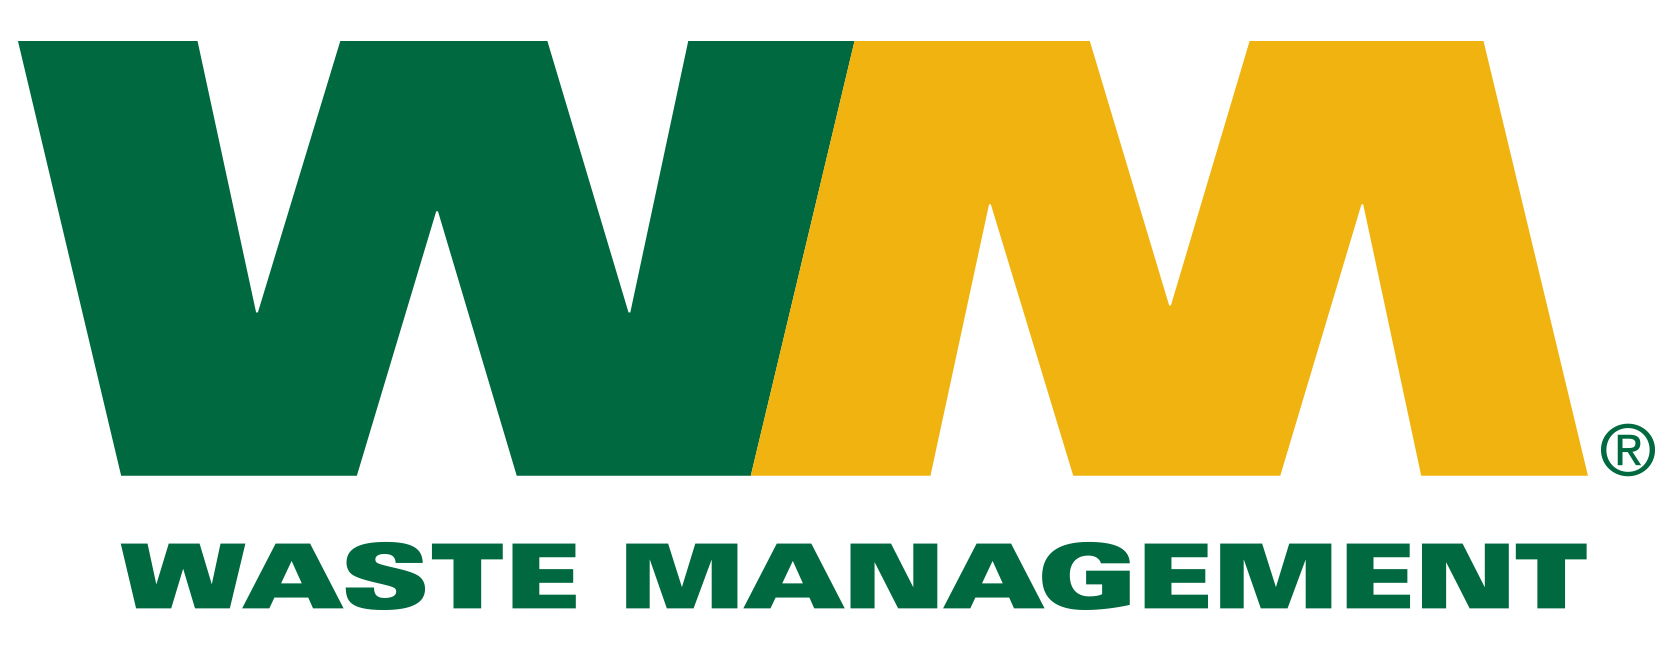 waste-management-logo